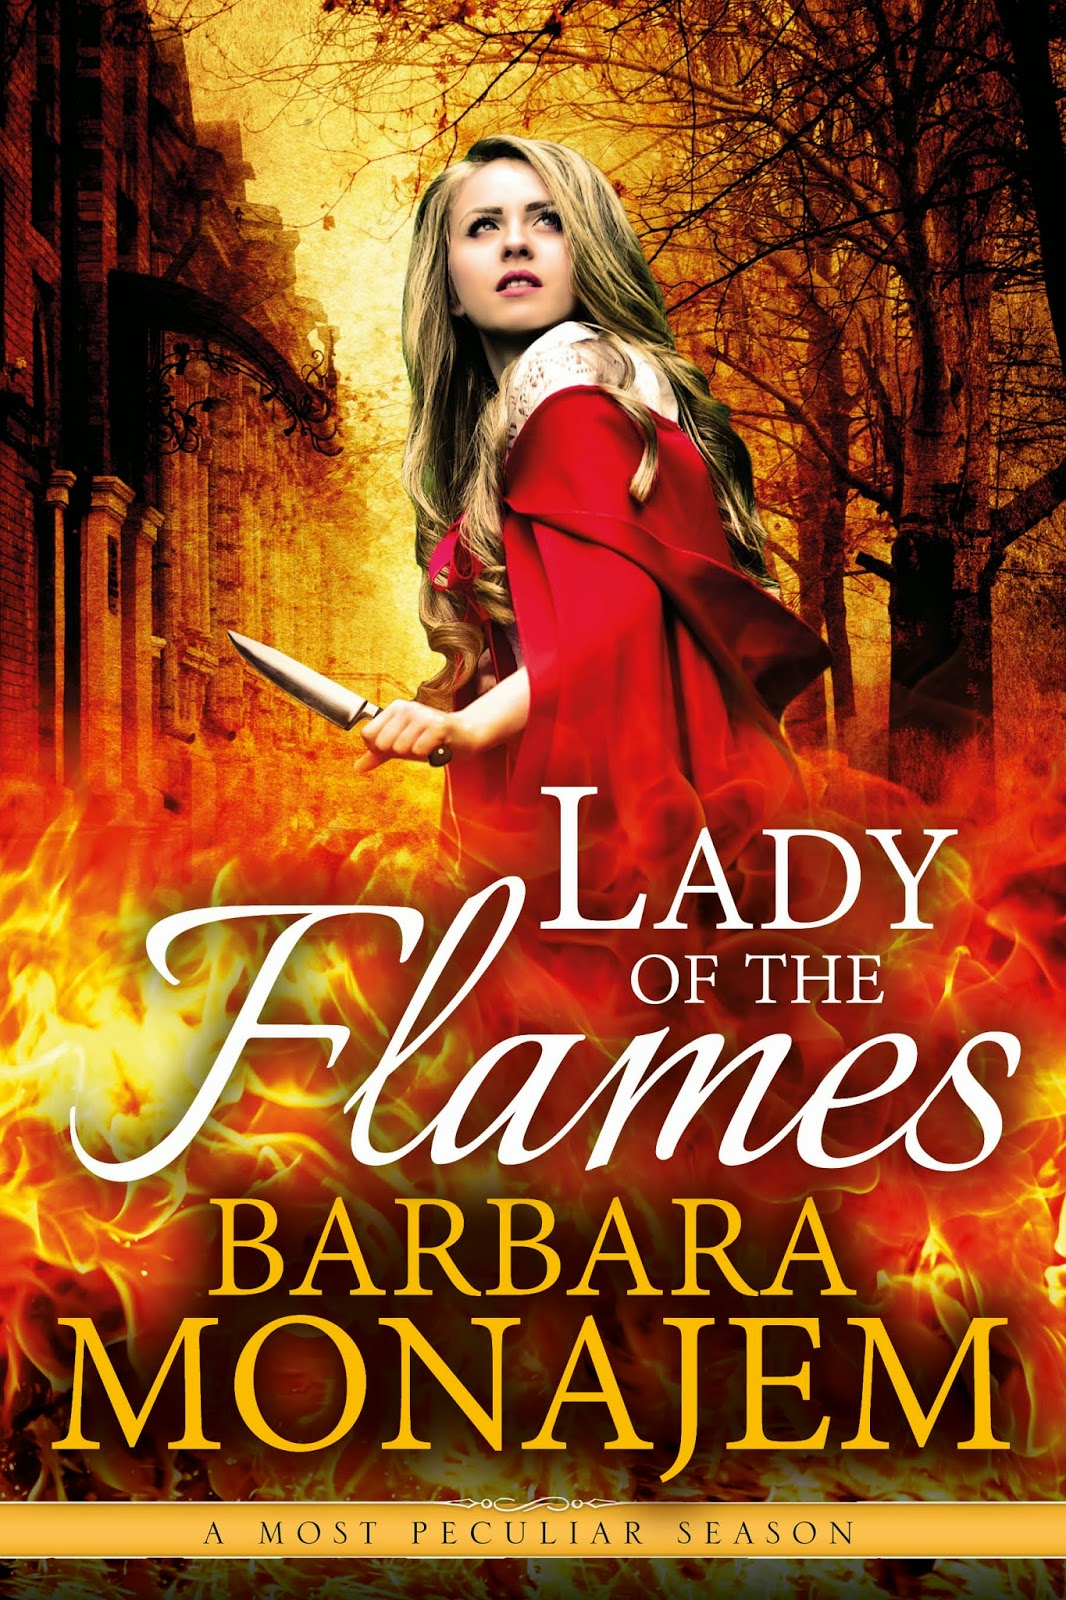 http://www.amazon.com/Lady-Flames-Most-Peculiar-Season-ebook/dp/B00T0JAWLO/